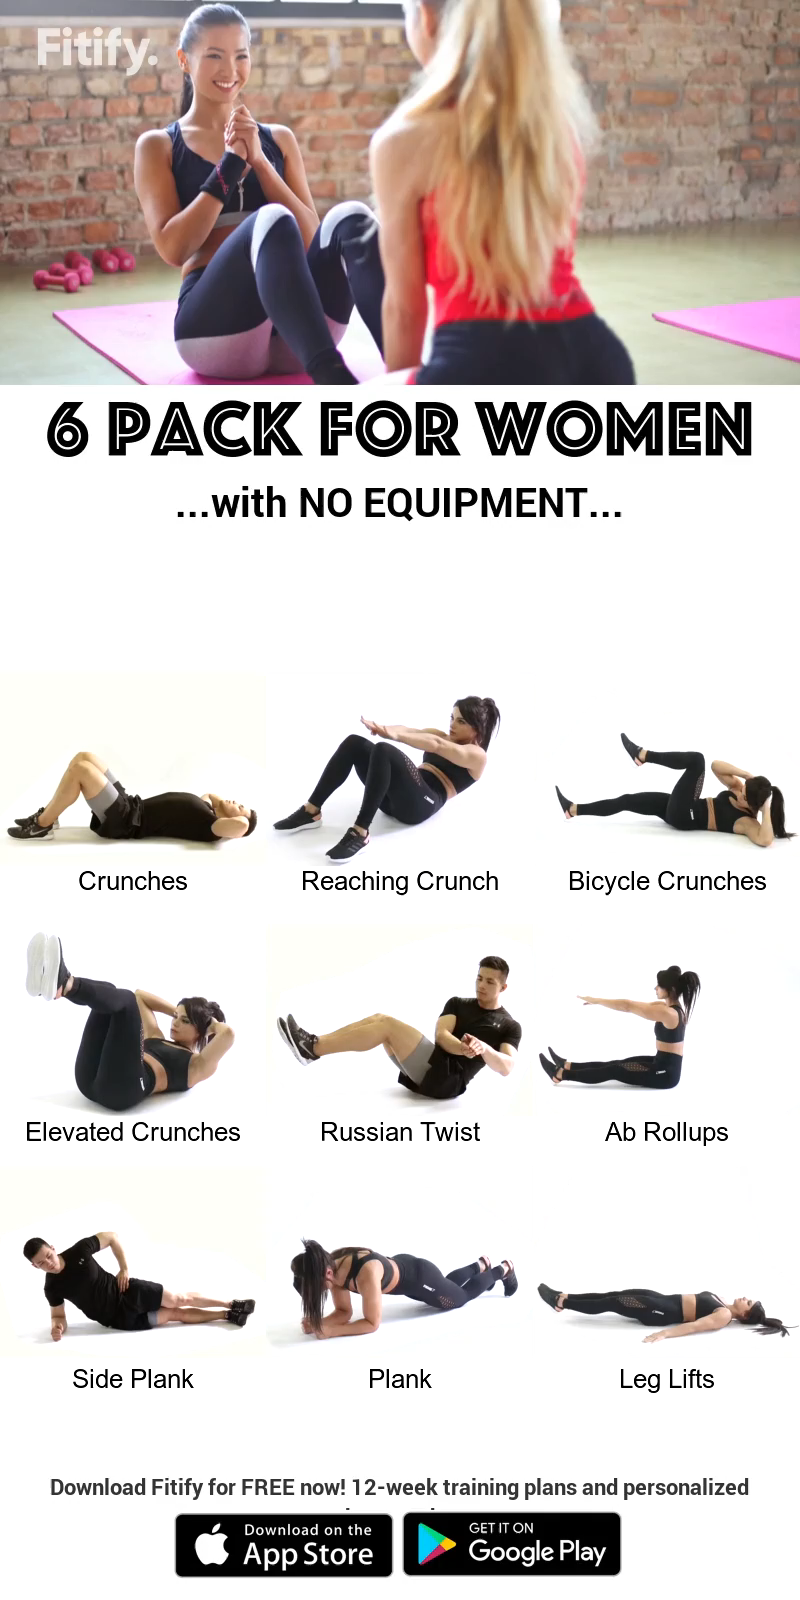 Women 6-Pack using NO Equipment -   17 workouts for flat stomach in 1 week ideas